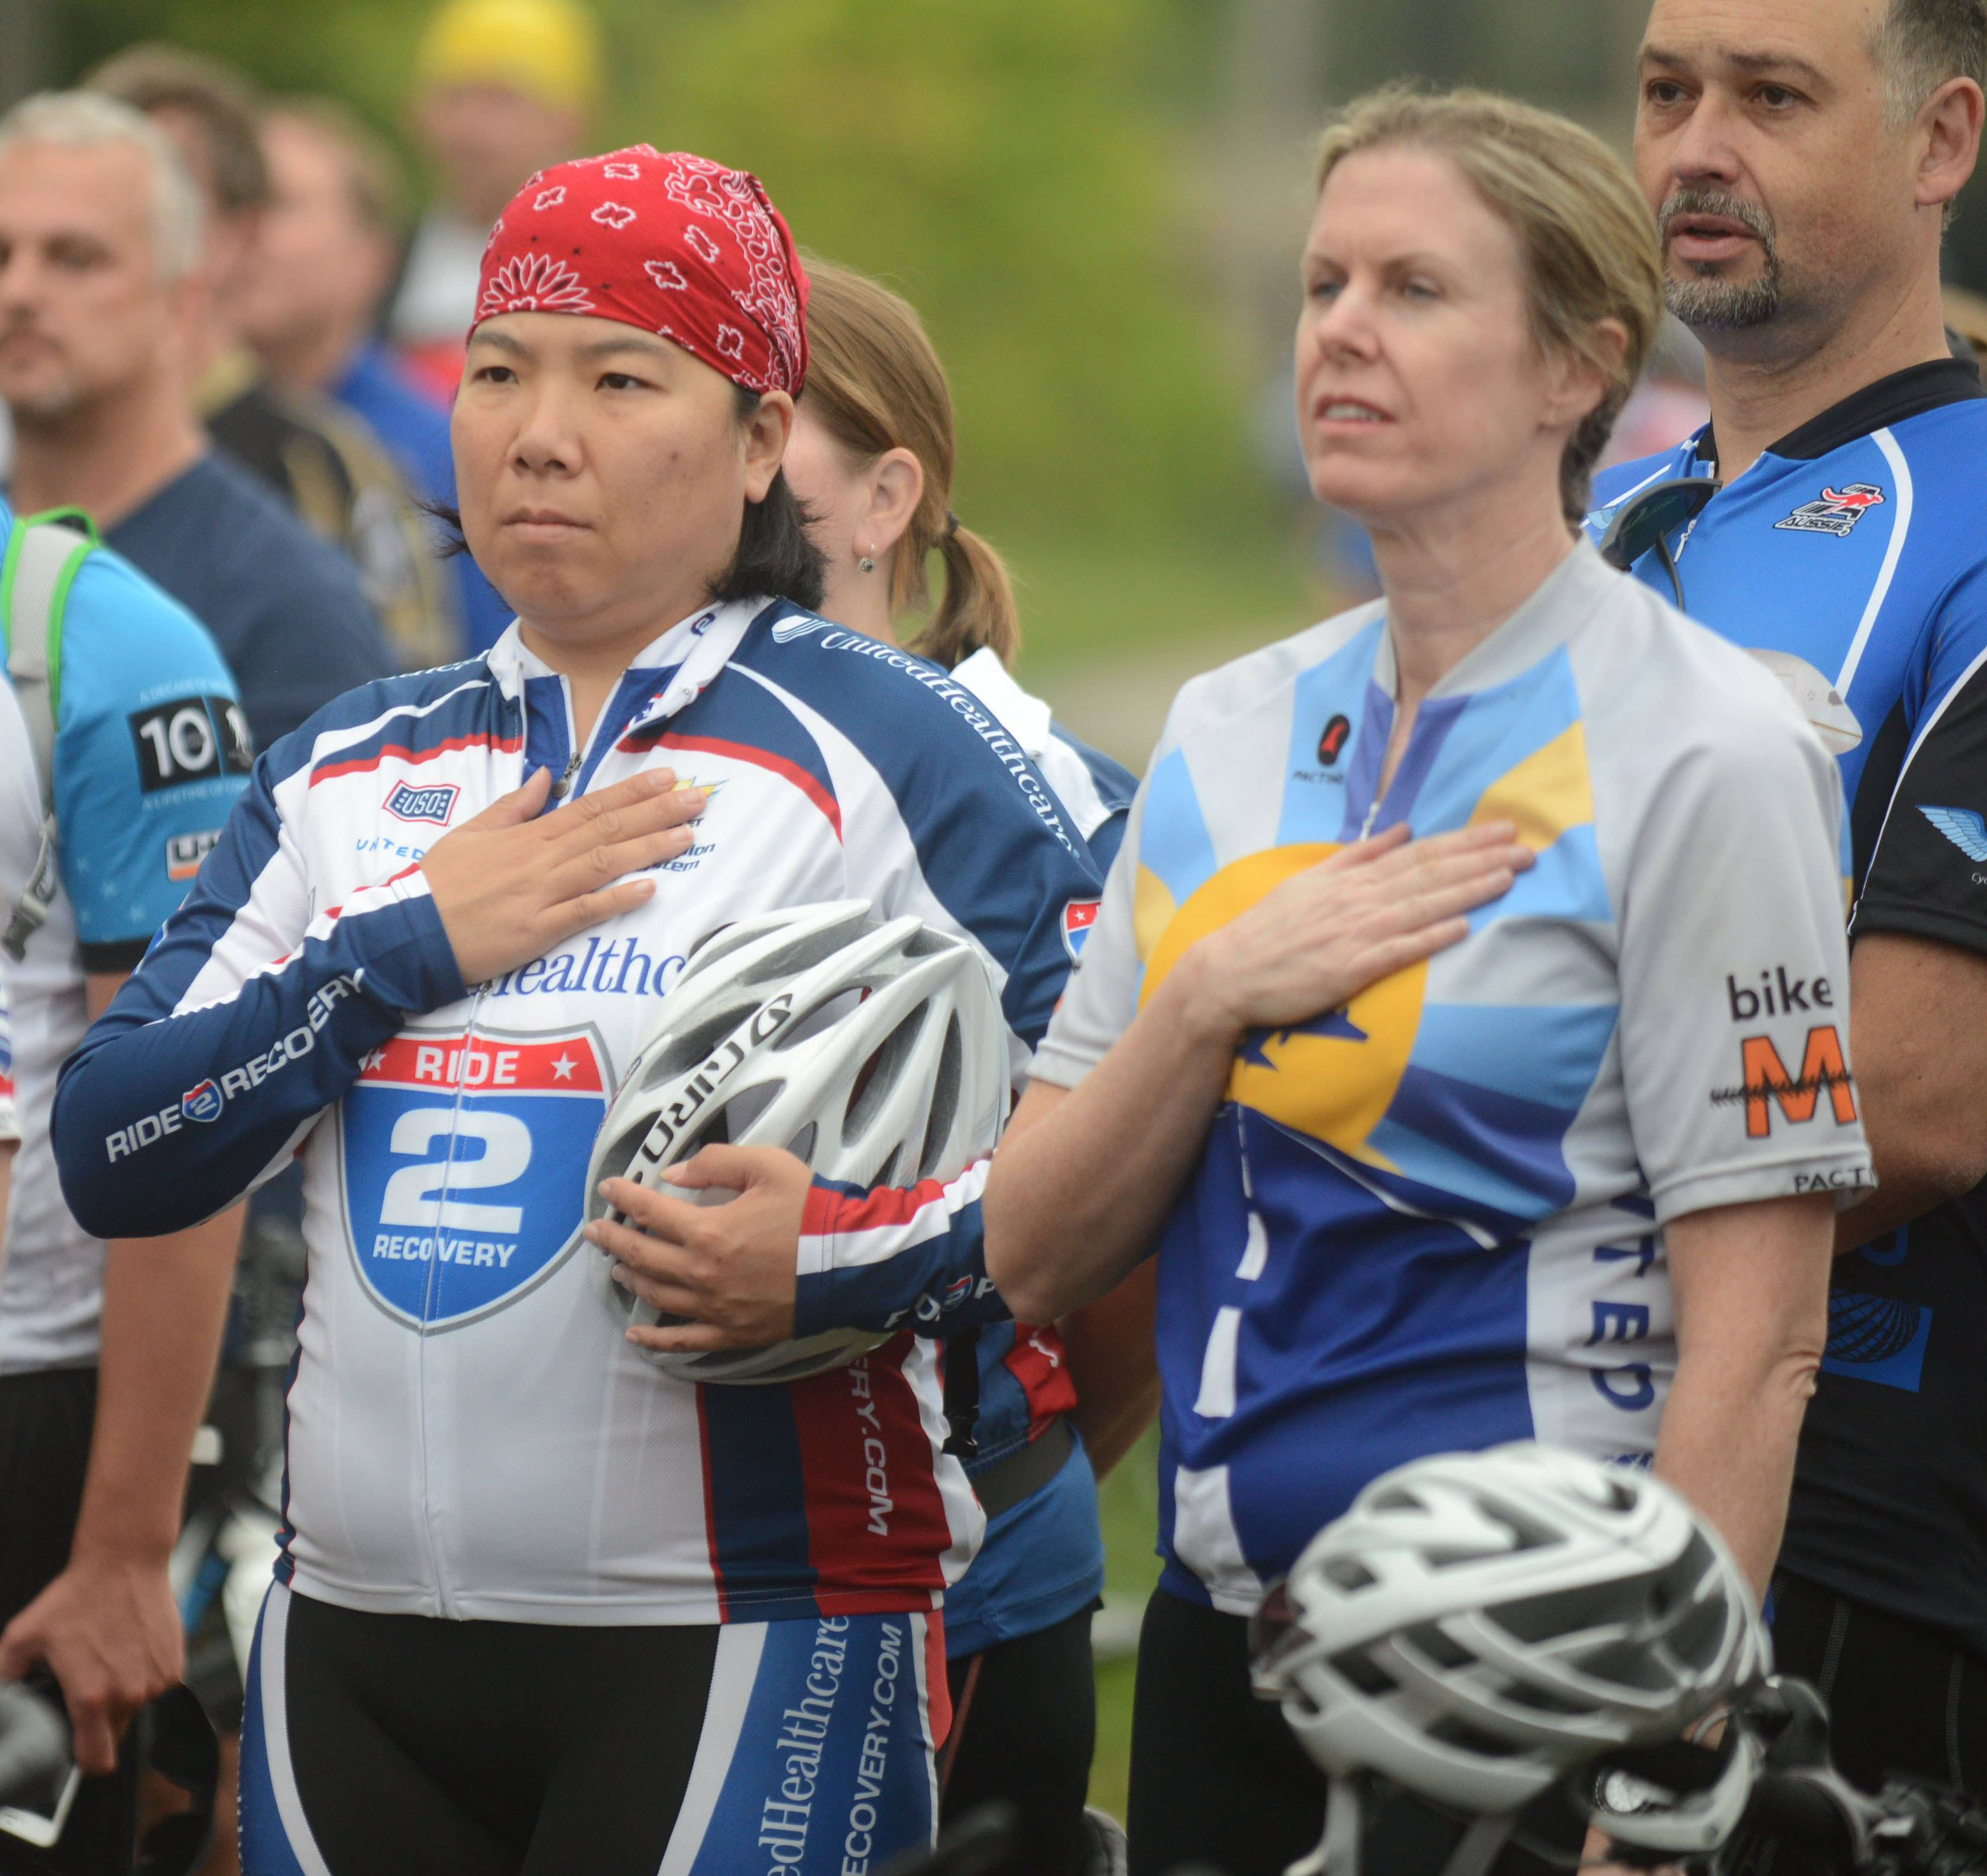 Nicole Lee of Chicago, left, and Laura Berry of Chicago before participating Sunday in the fourth annual Barrington Honor Ride. The event raised money for Ride 2 Recovery, a national effort to provide custom bicycles and cycling programs at VA hospitals across the country.